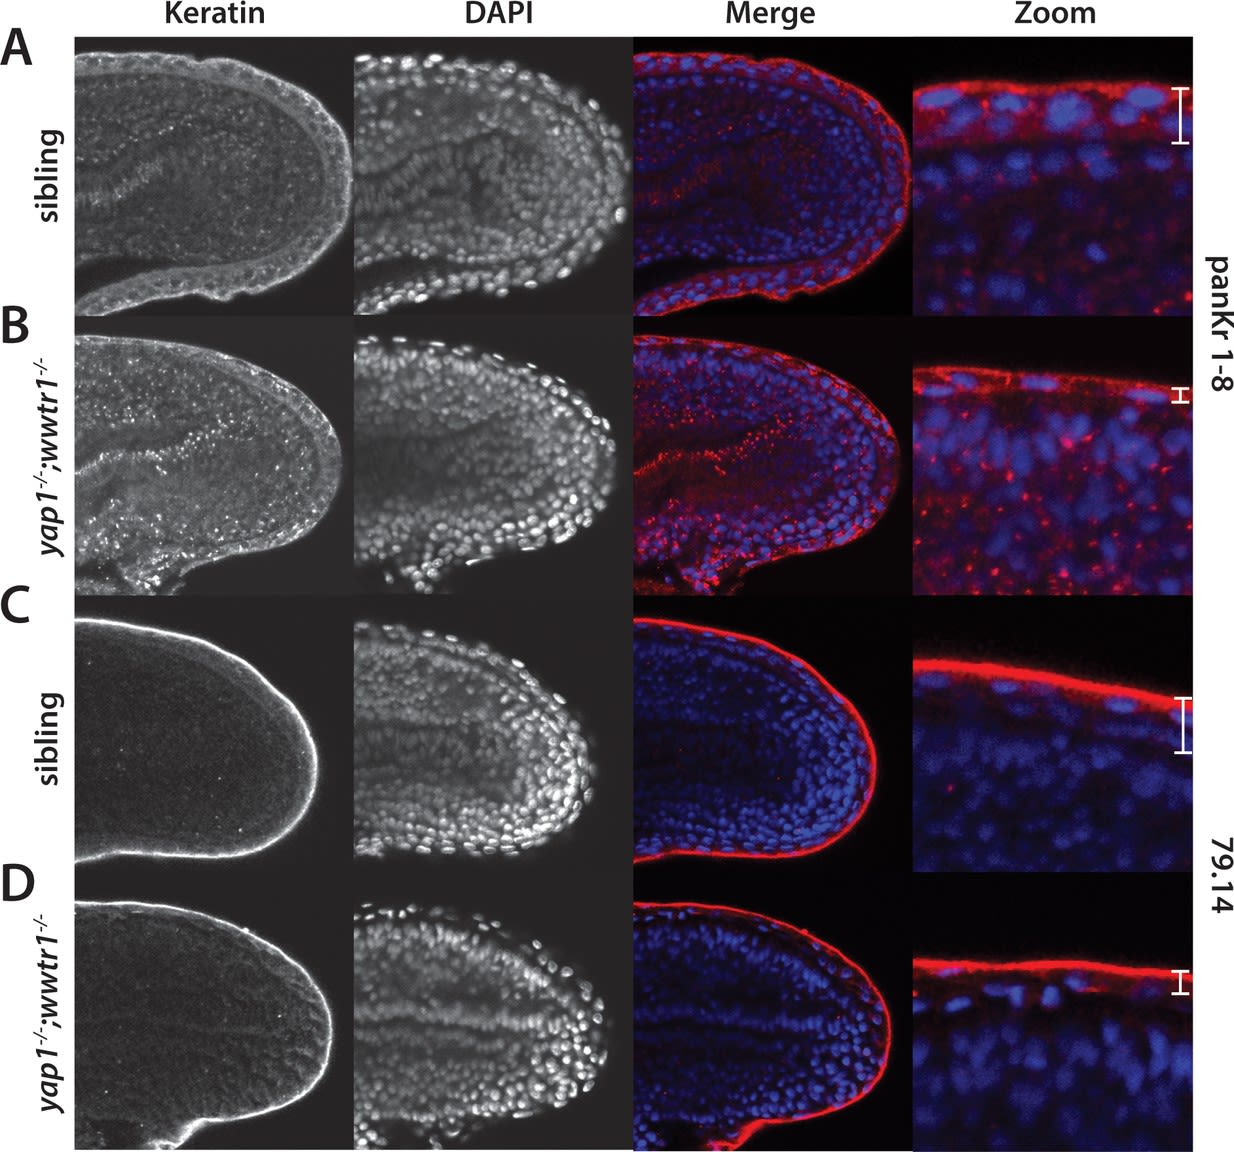 Regulation of posterior body and epidermal morphogenesis in zebrafish by localized Yap1 and Wwtr1.